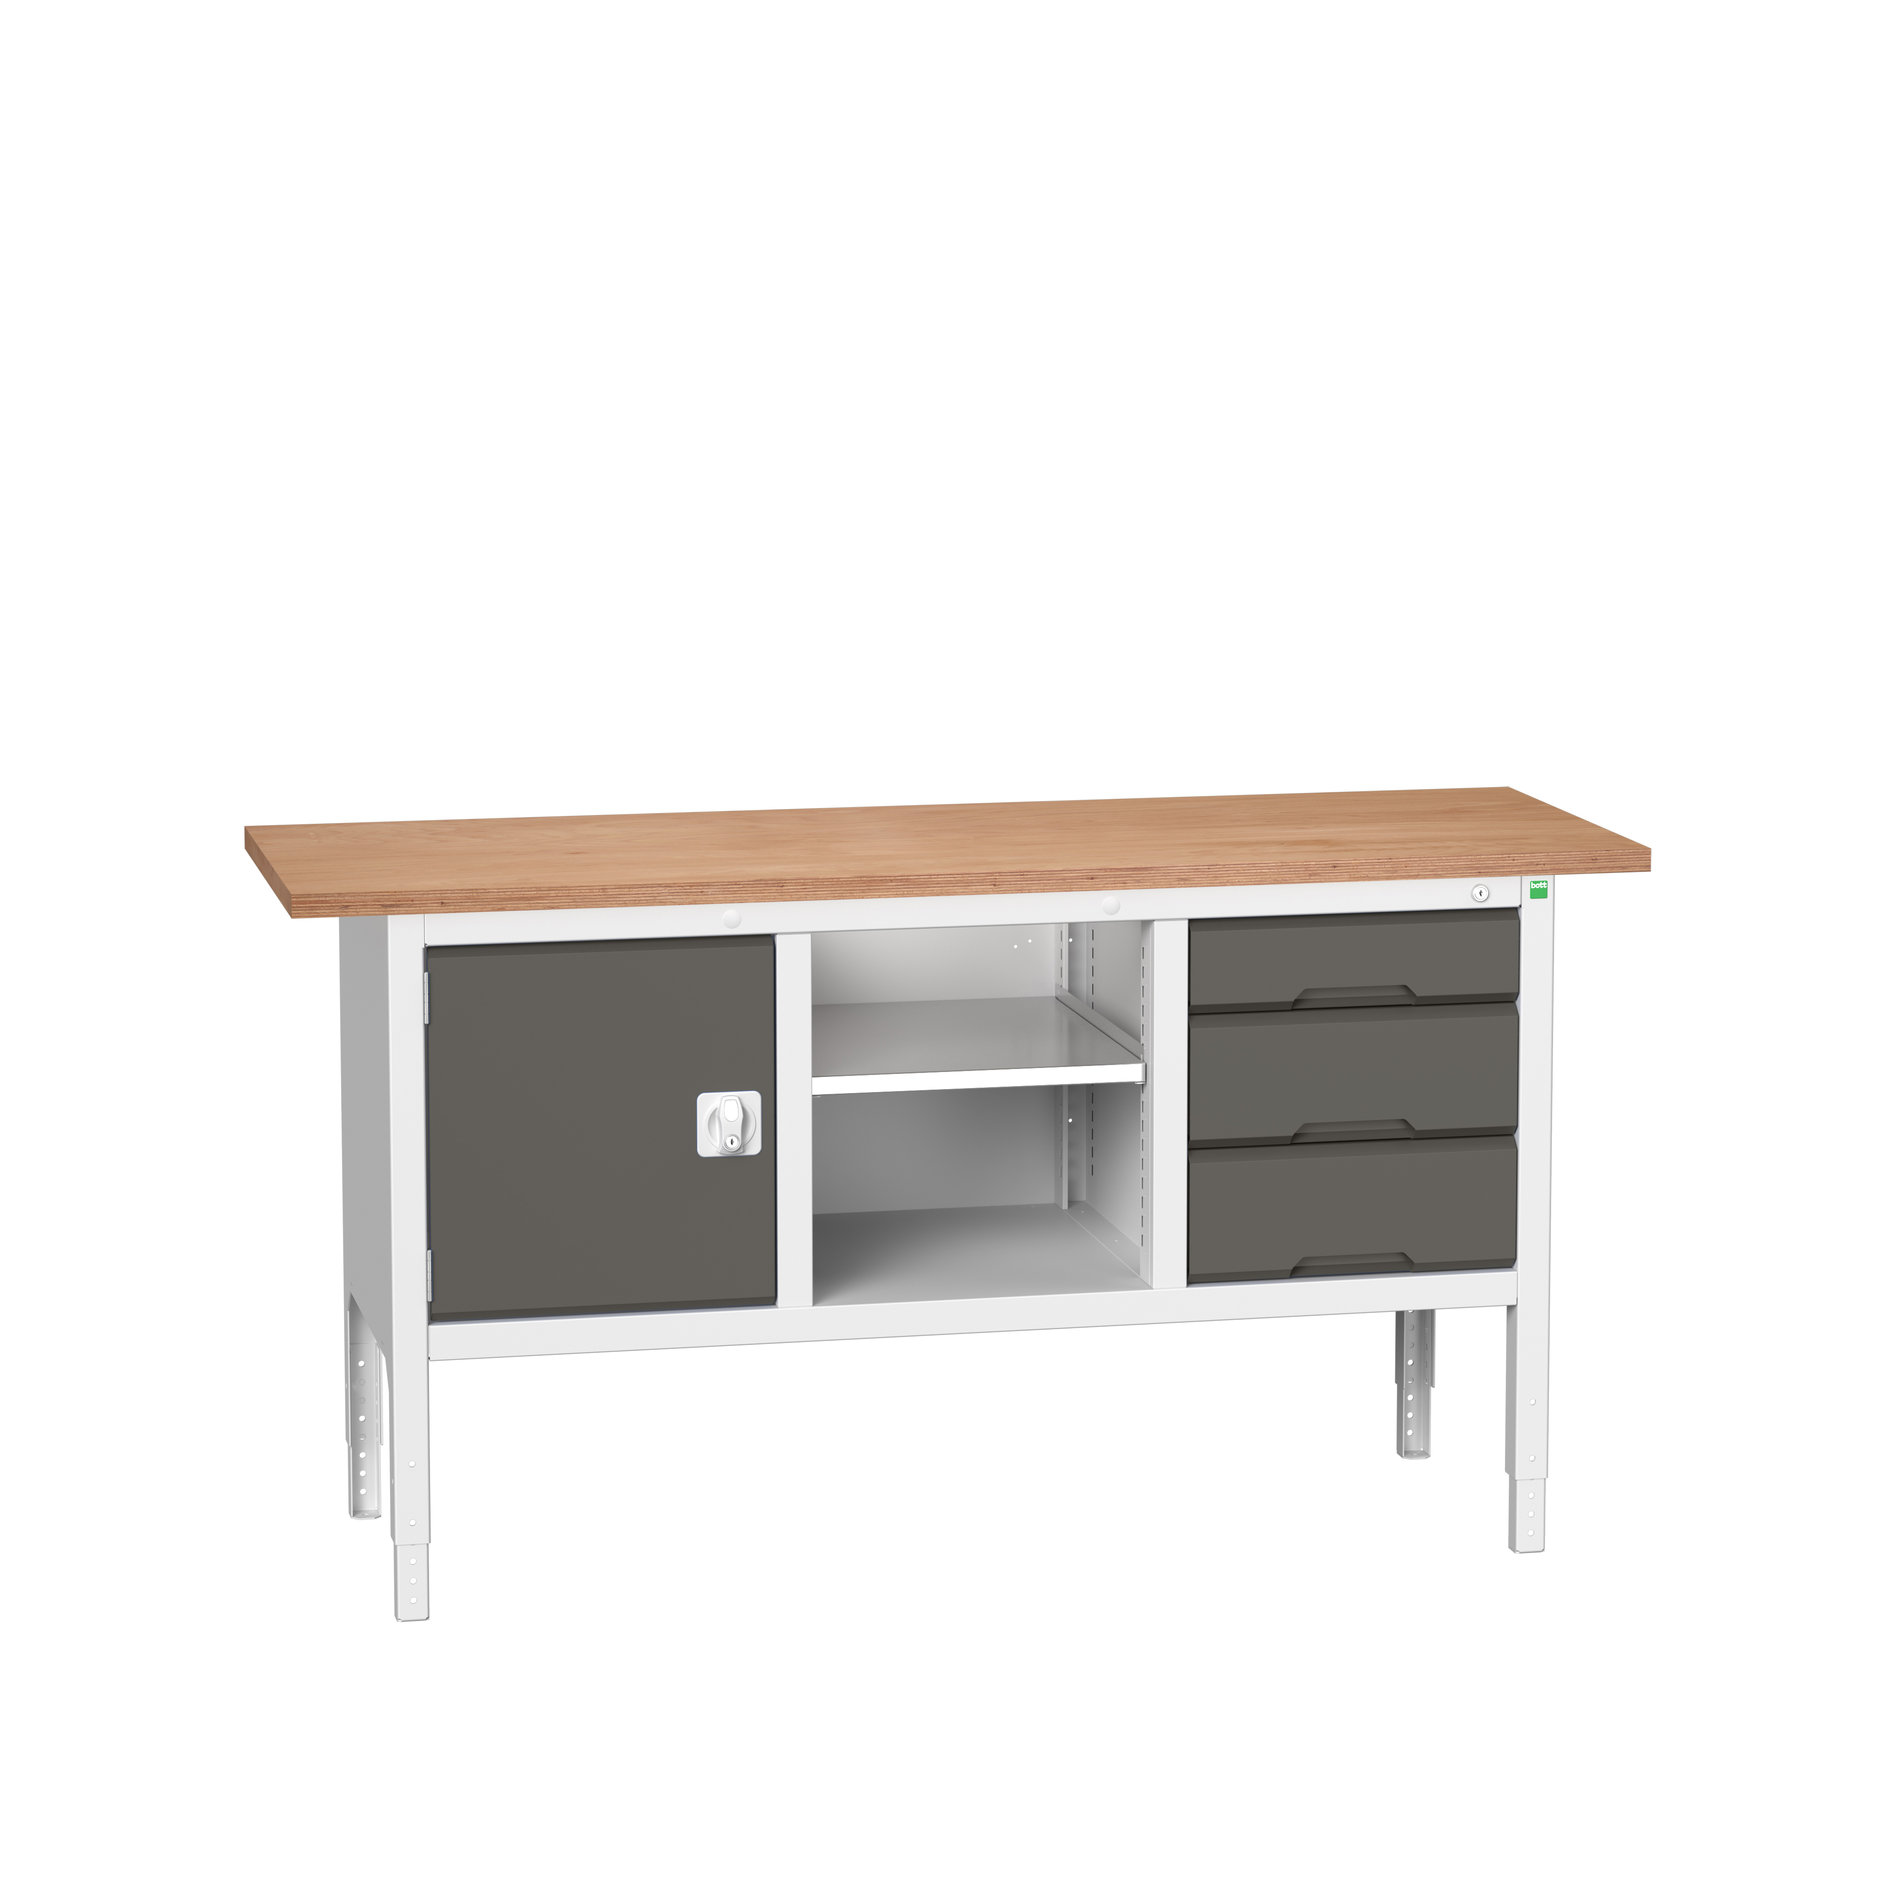 Bott Verso Adjustable Height Storage Bench With Full Cupboard / Open Cupboard / 3 Drawer Cabinet